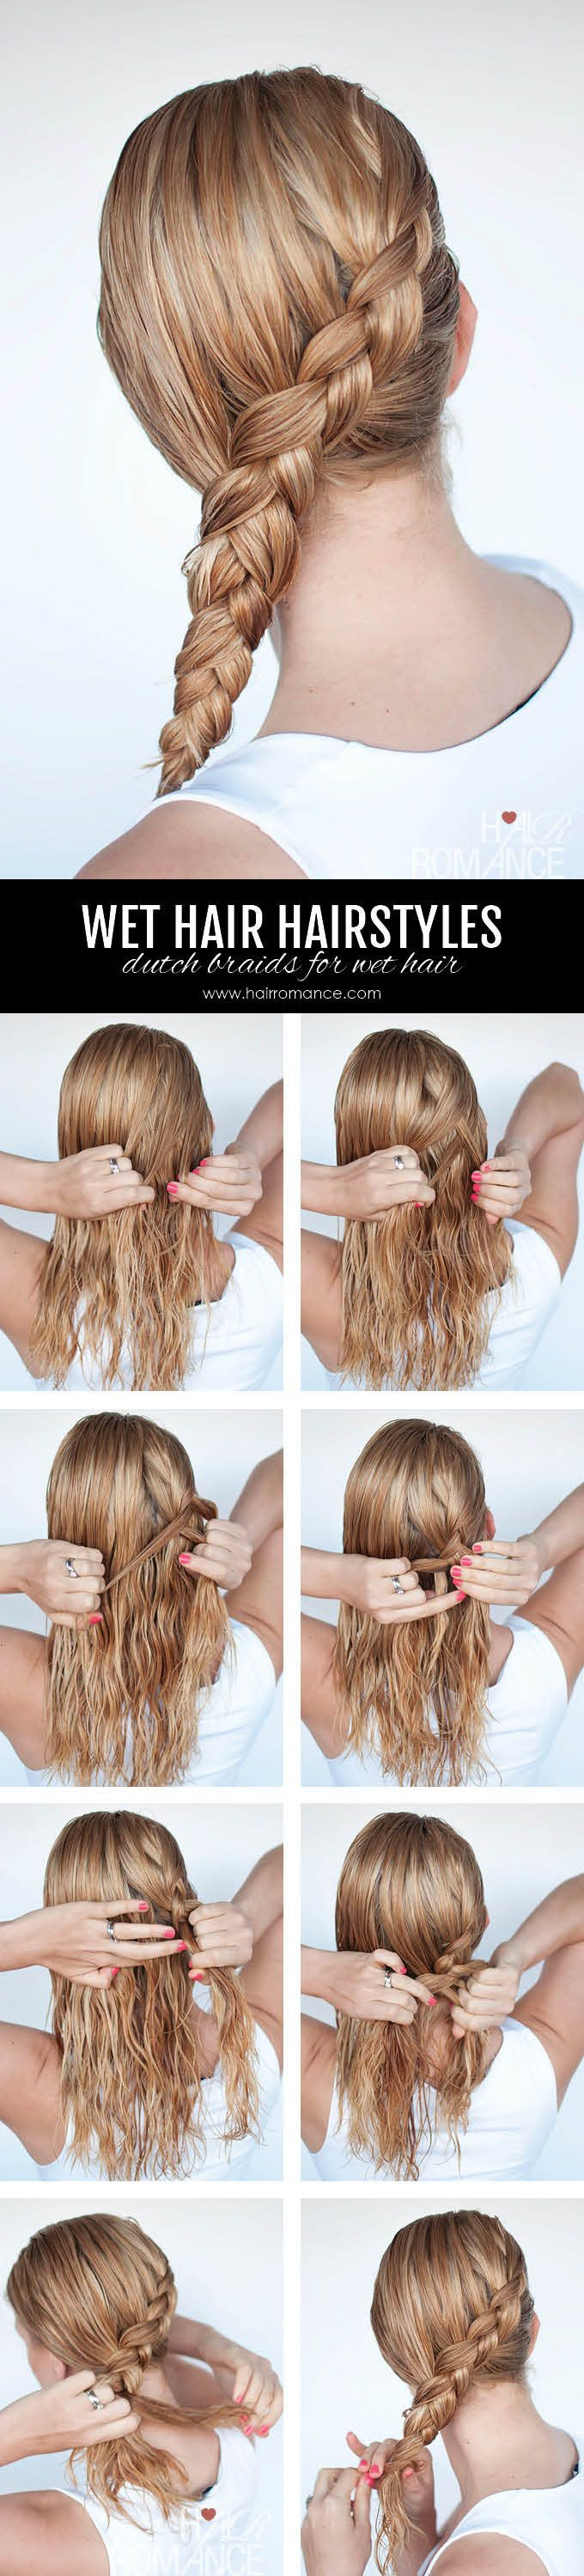 Hairstyles for wet hair: 3 simple braid tutorials you can ...